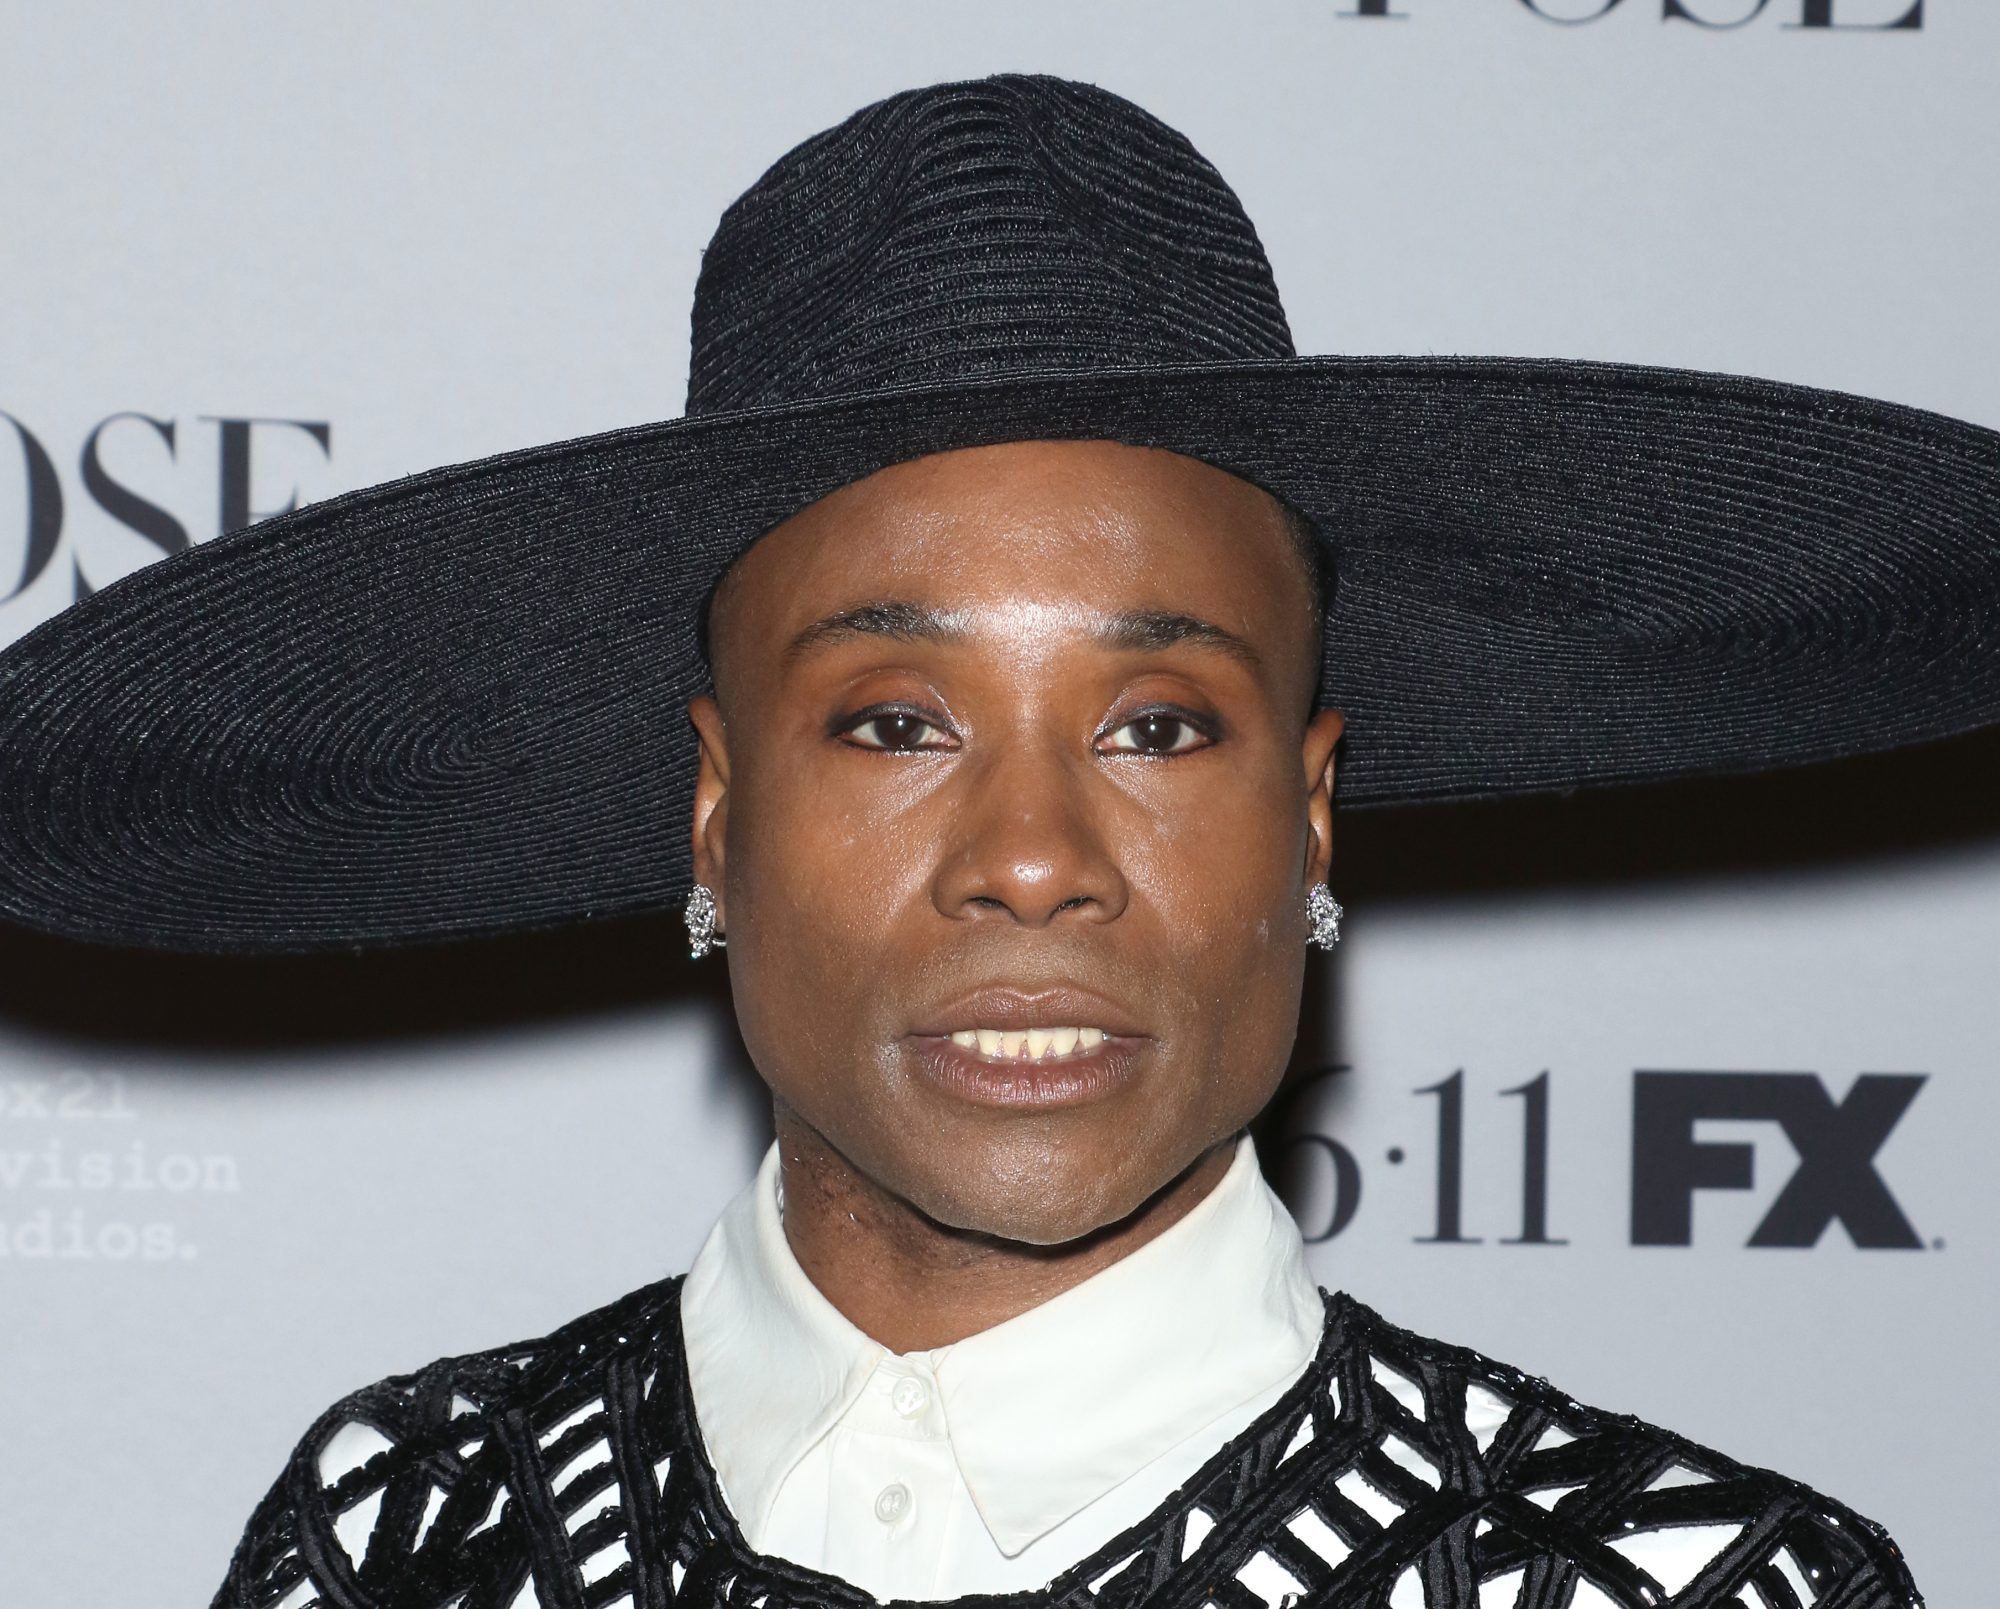 billy-porter-pose.jpg